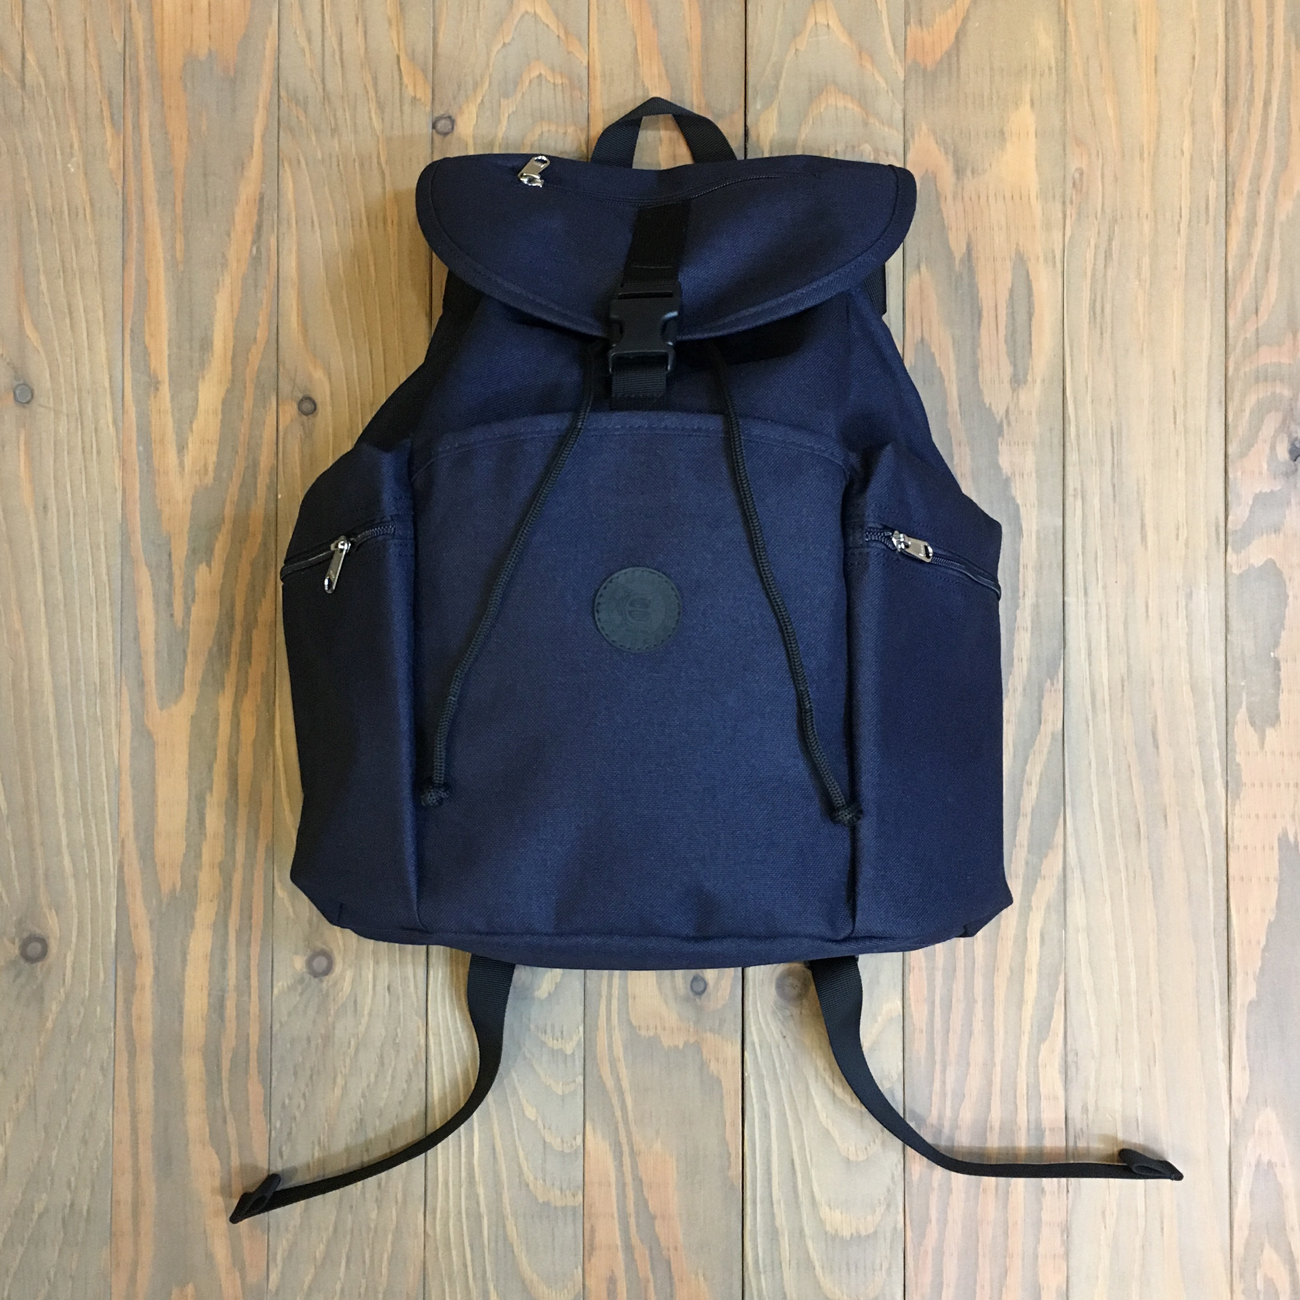 EVISEN CHOMBO BACKPACK 2.0 NAVY